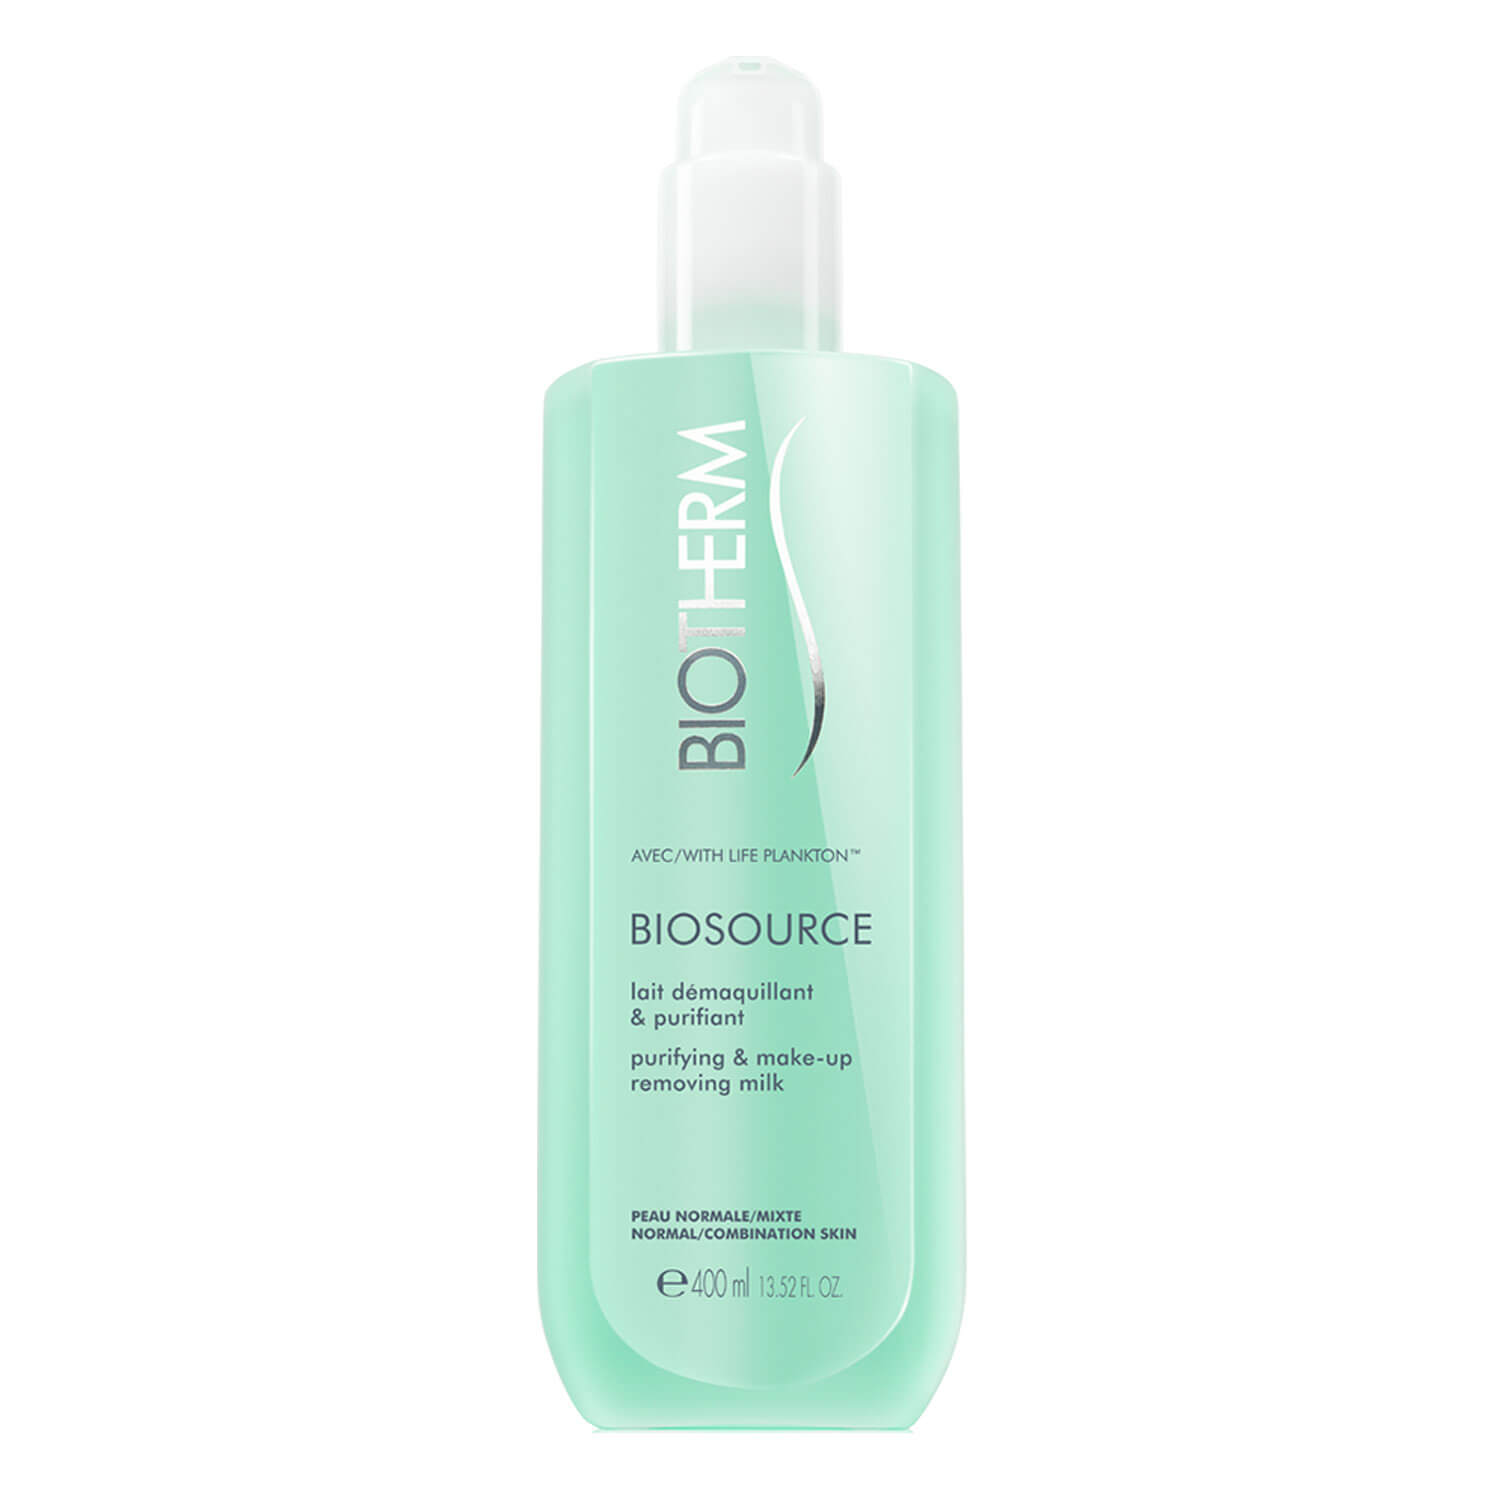 Biosource - Make-Up Removing Milk Normal/Combination Skin Limited Edition